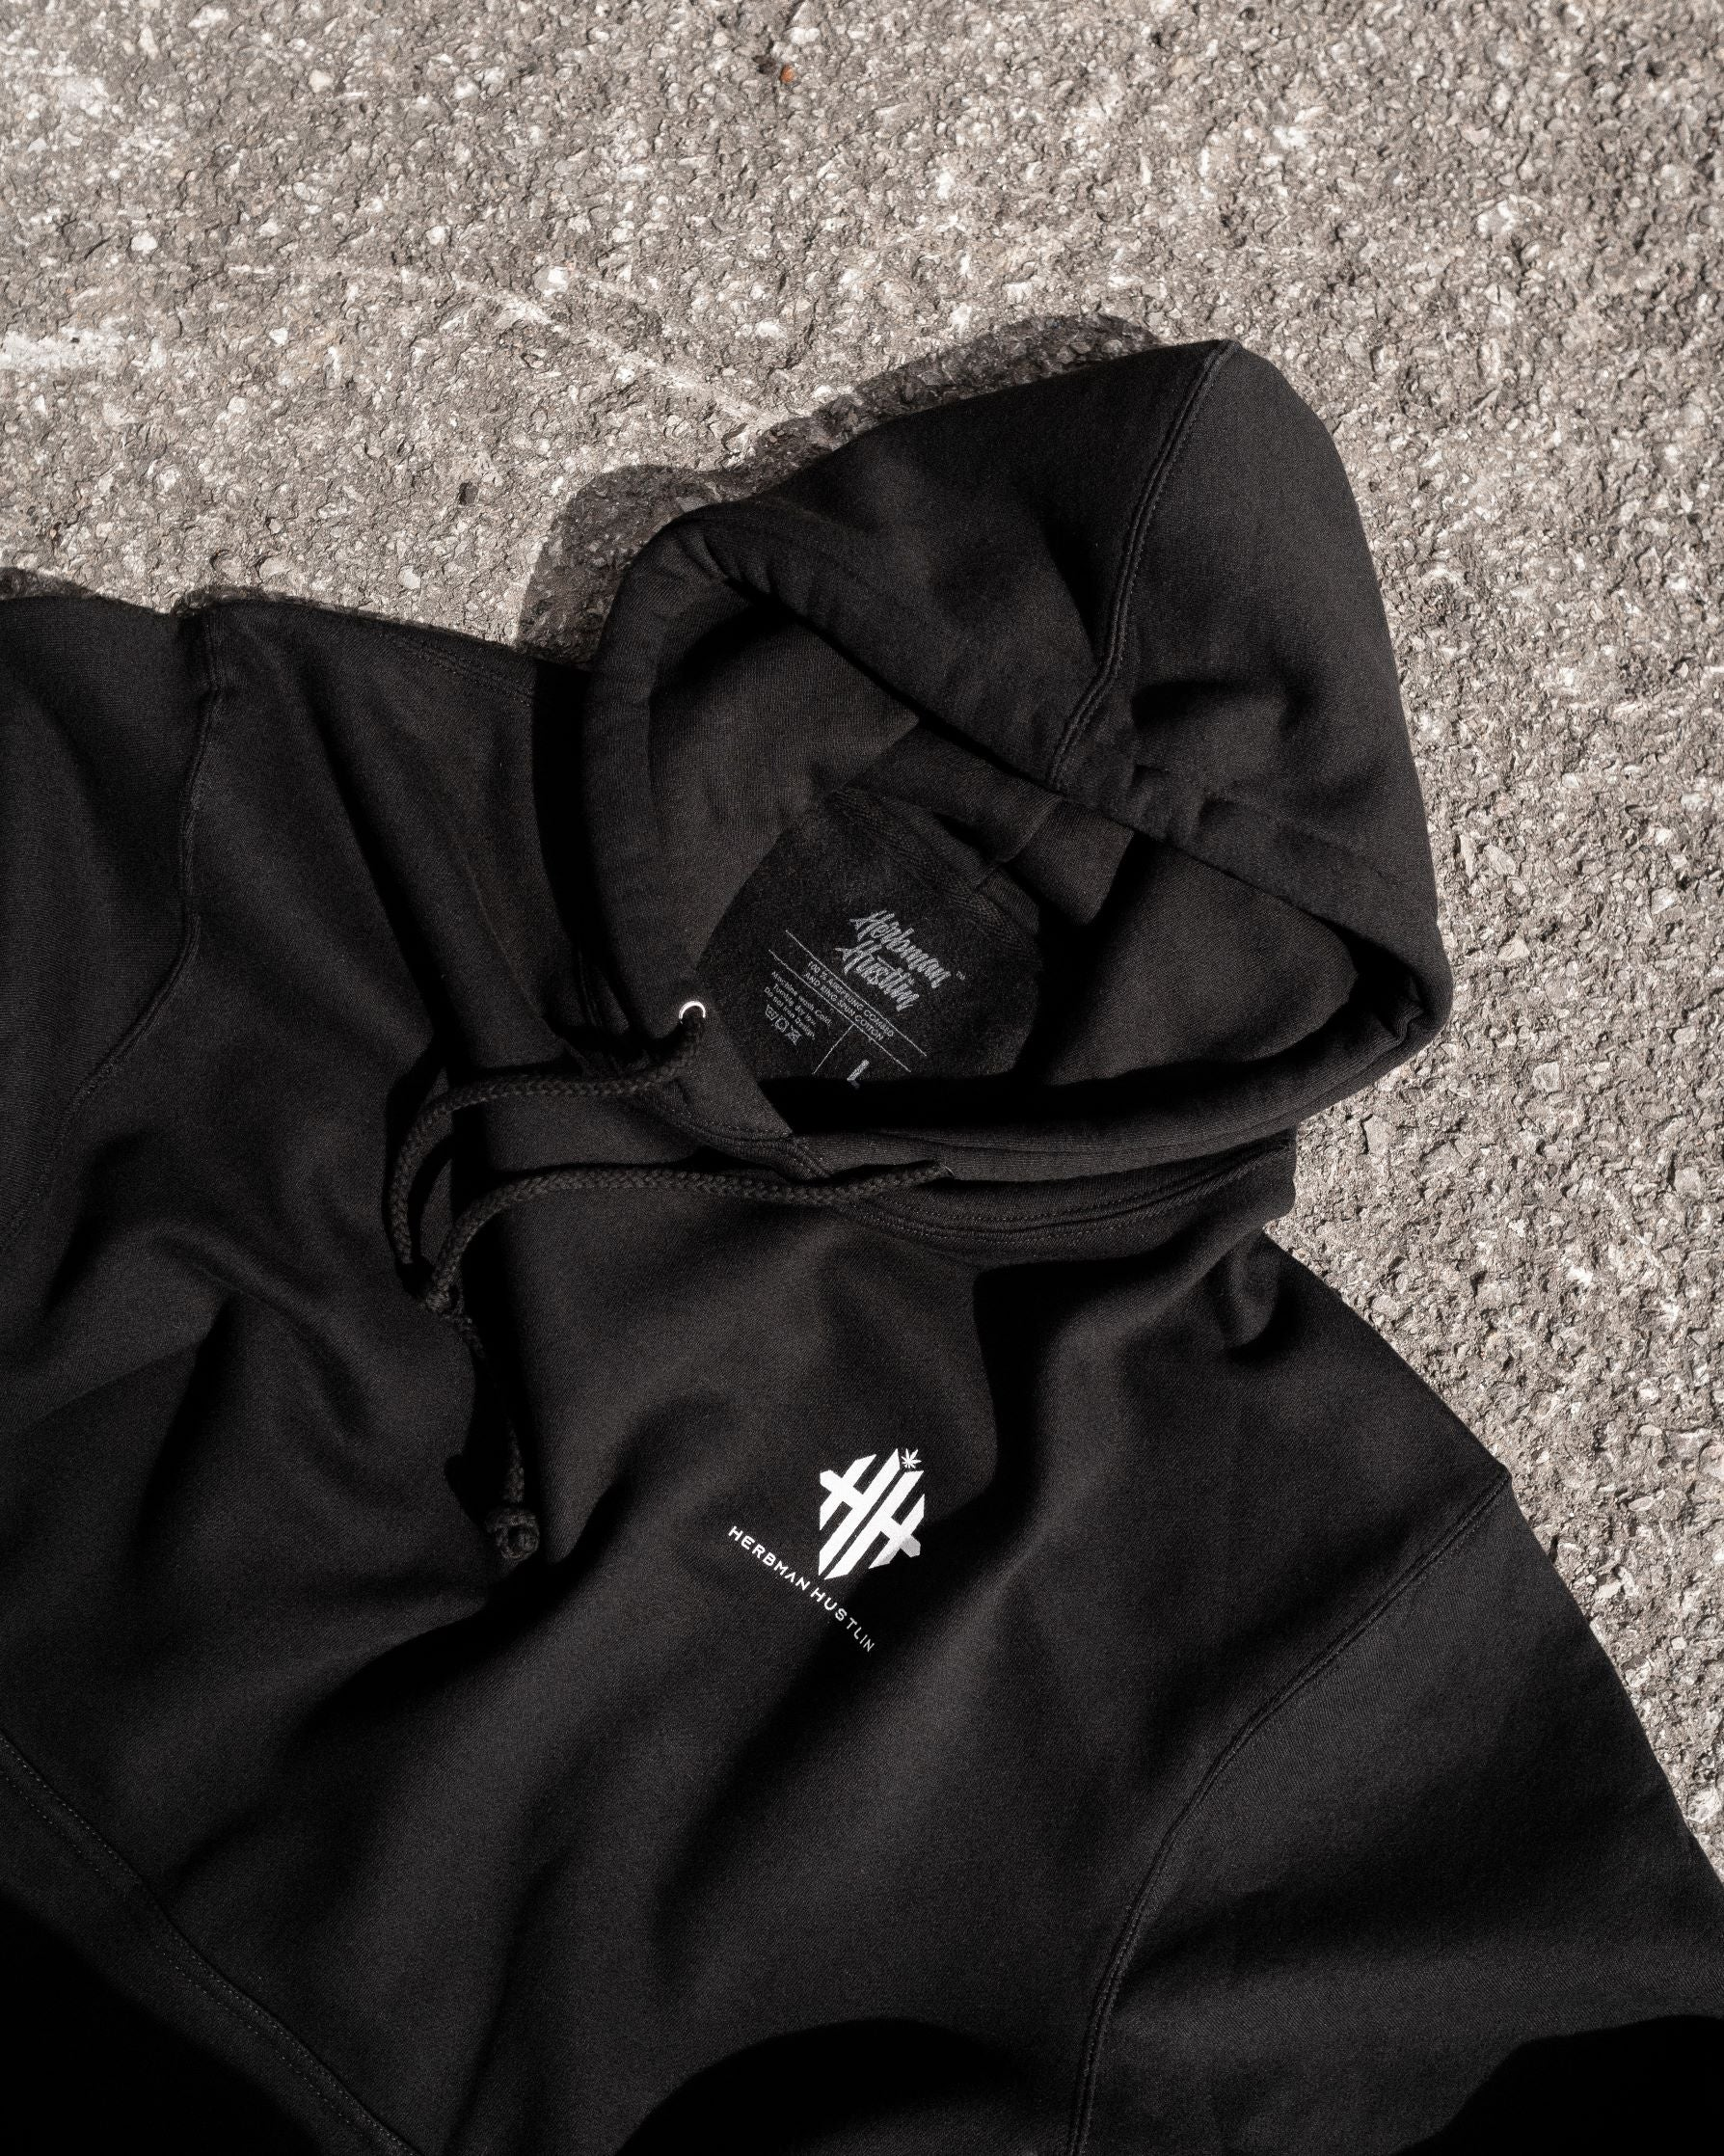 Herbman Hustlin Monogram Hoodie - Black/White - Back